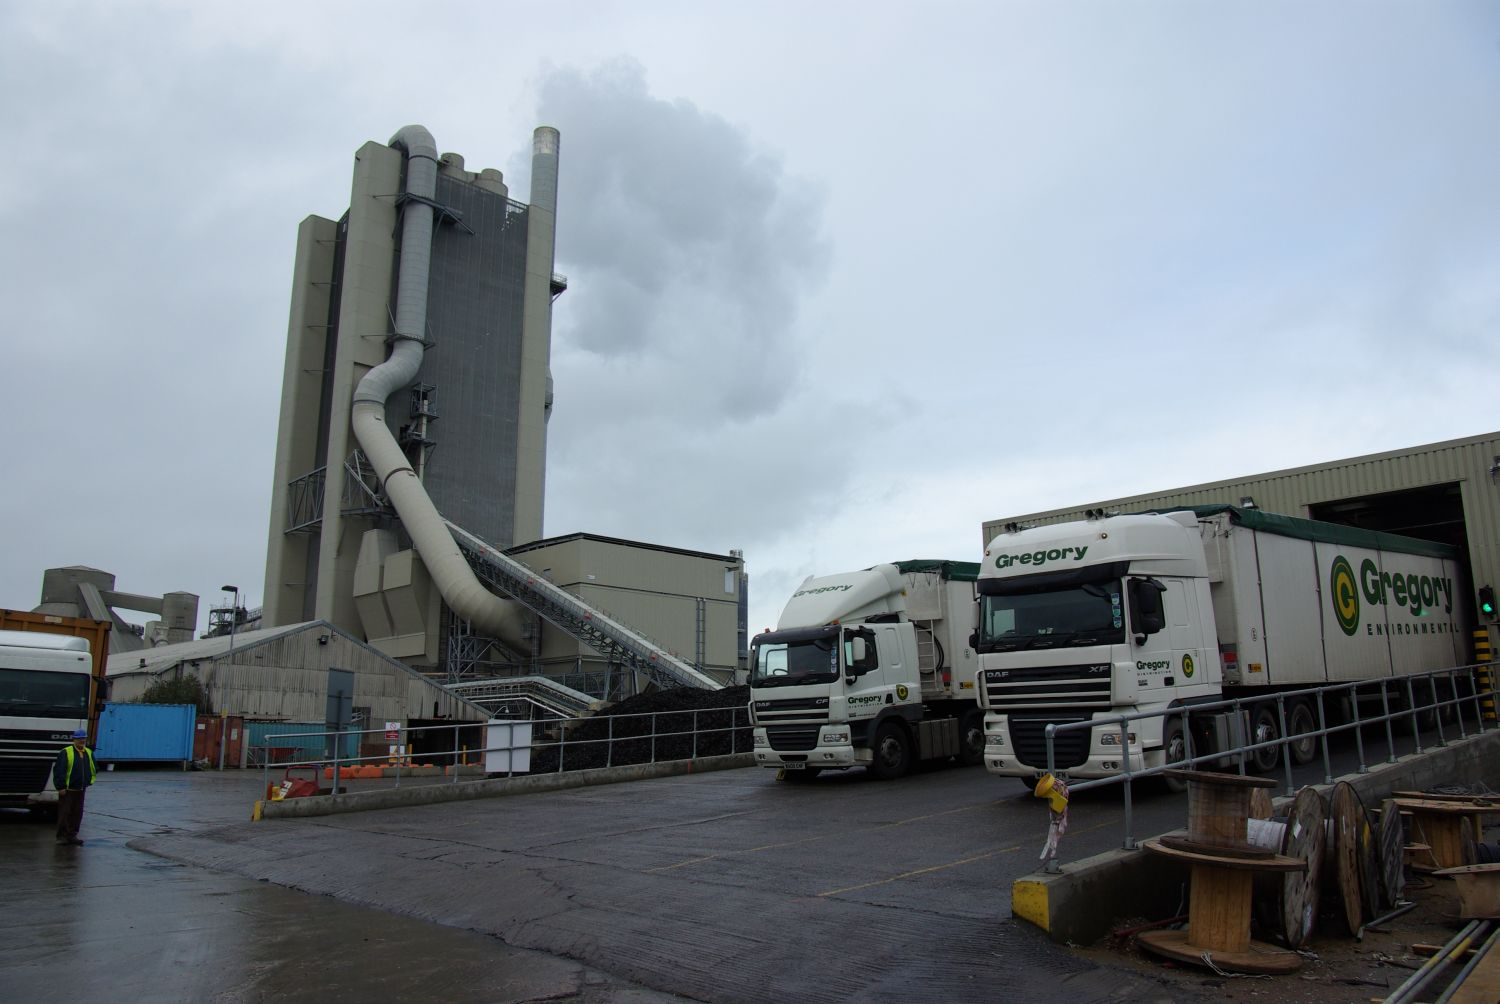 CEMEX's Rugby plant needed additional unloading and conveyor capacity.